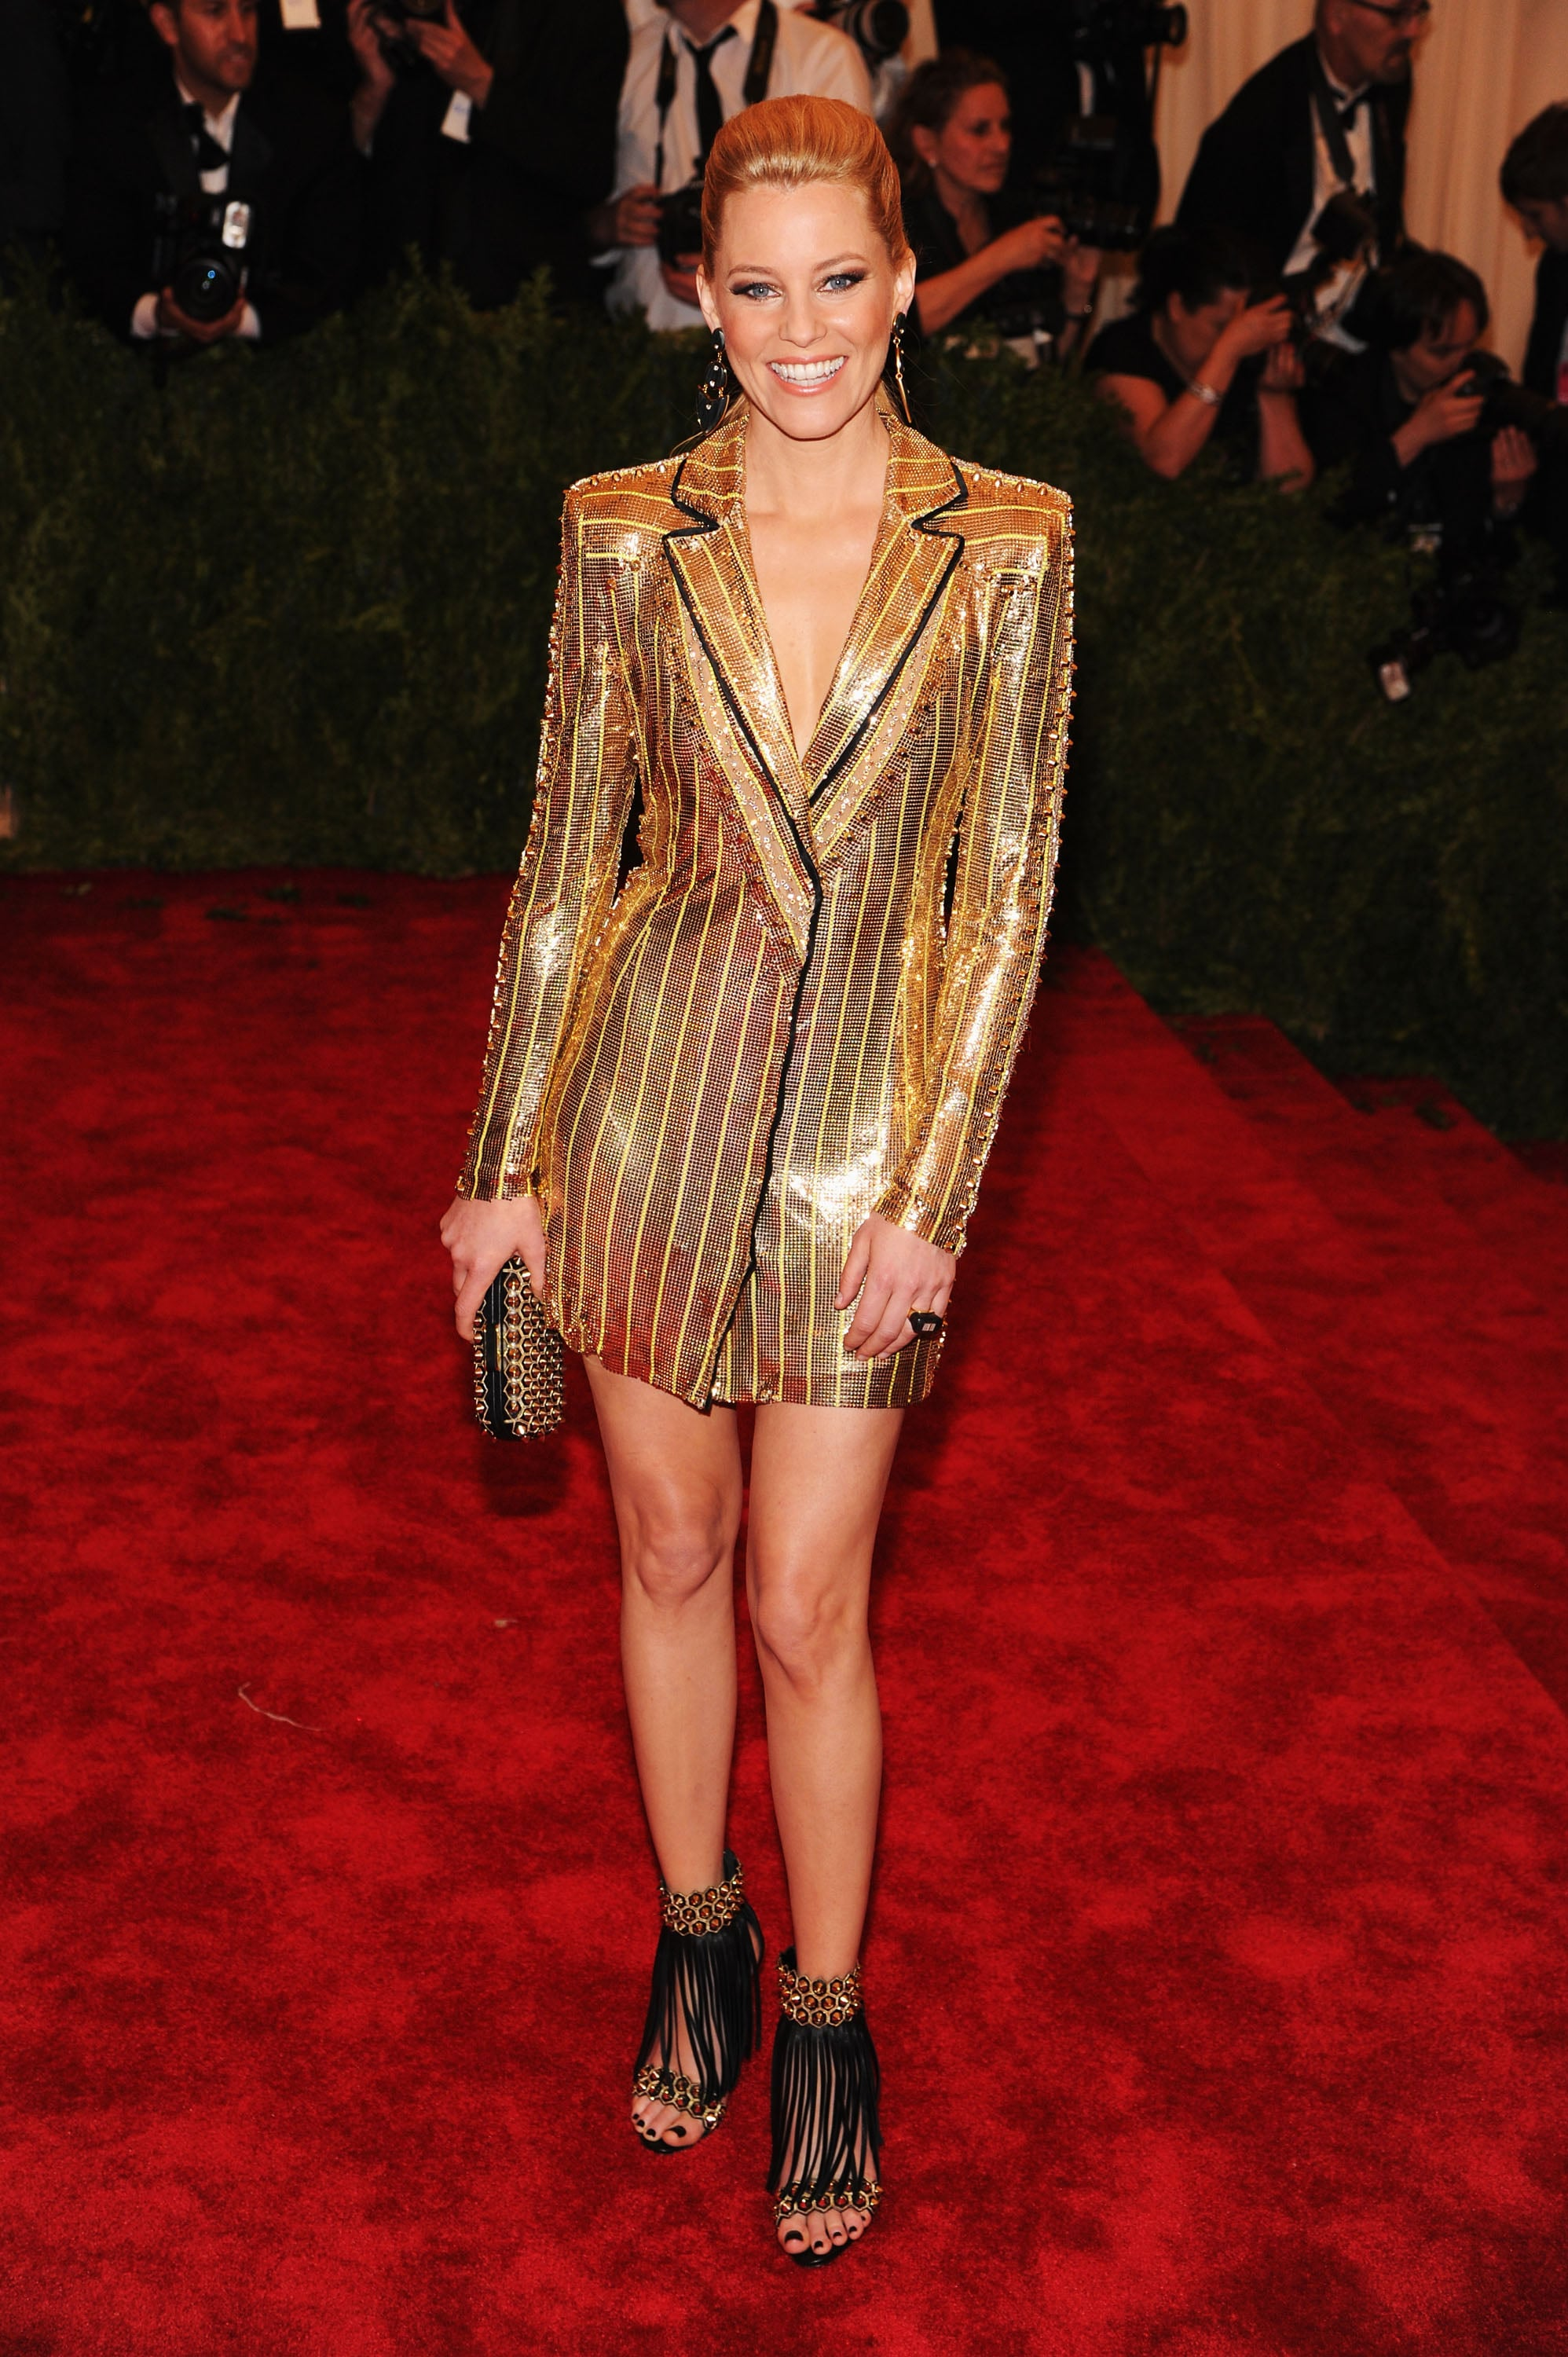 Elizabeth Banks in Versace at the Met Gala